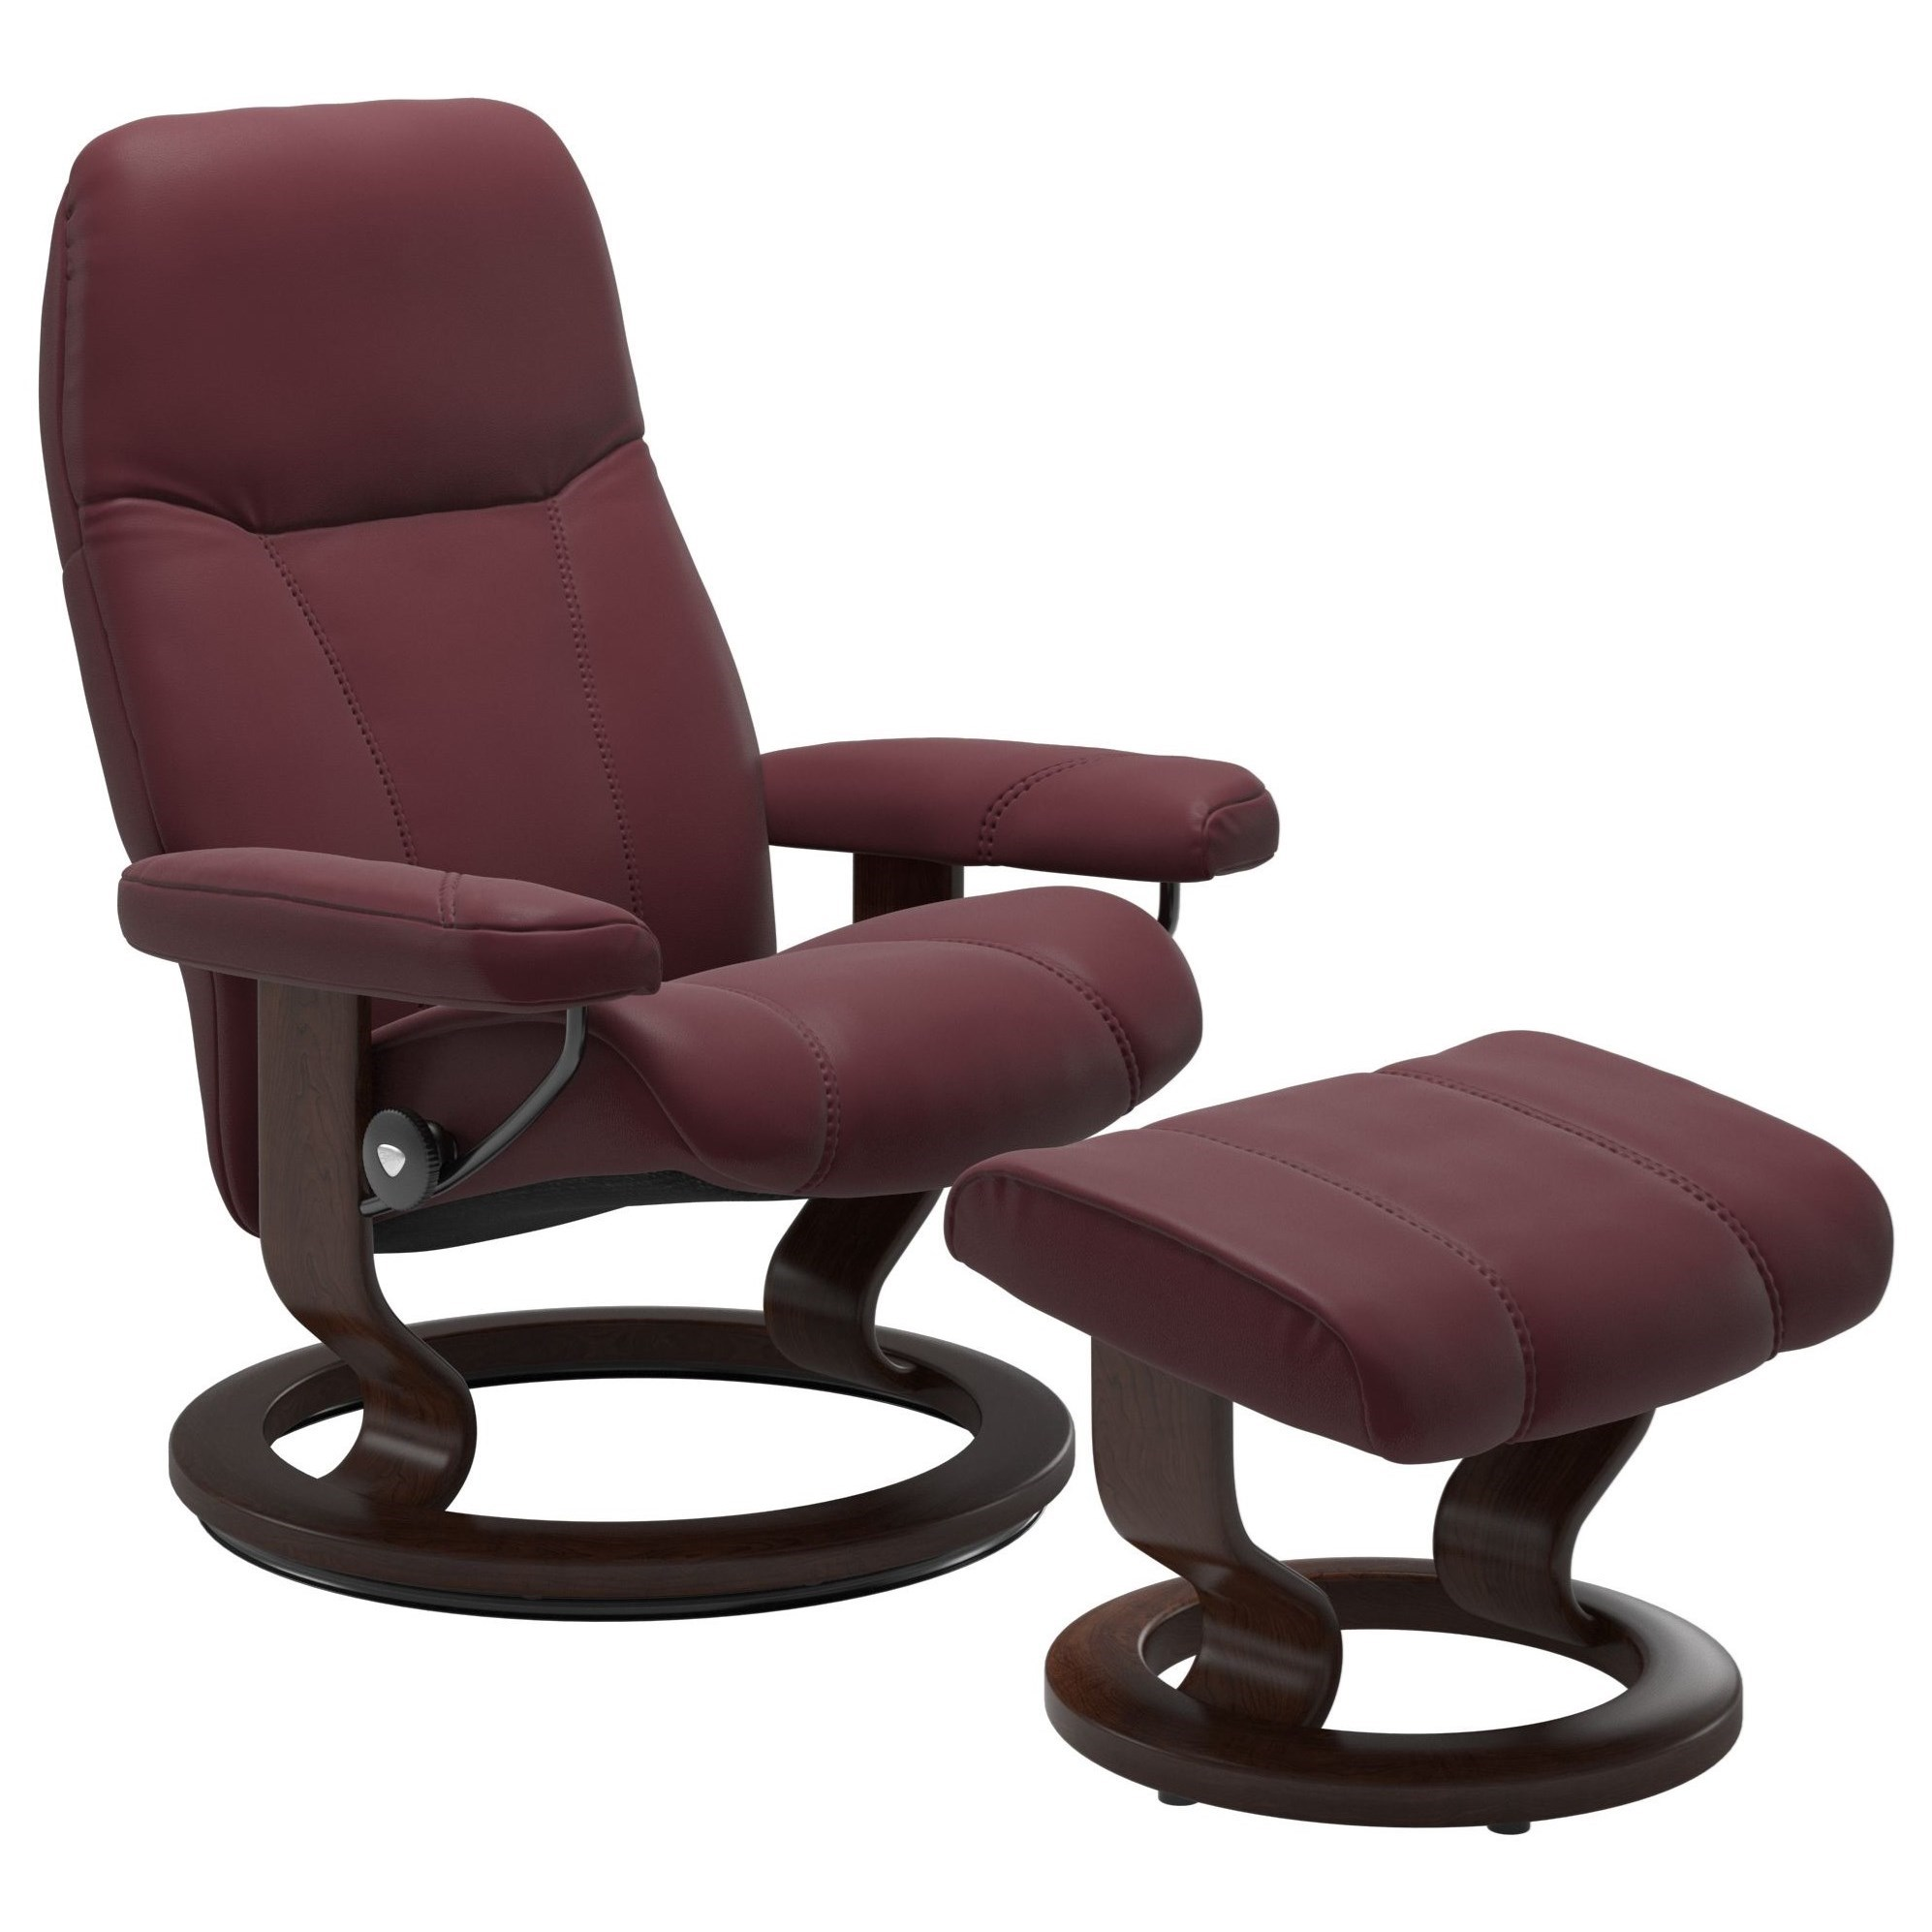 Consul Small Chair & Ottoman with Classic Base by Stressless at HomeWorld Furniture